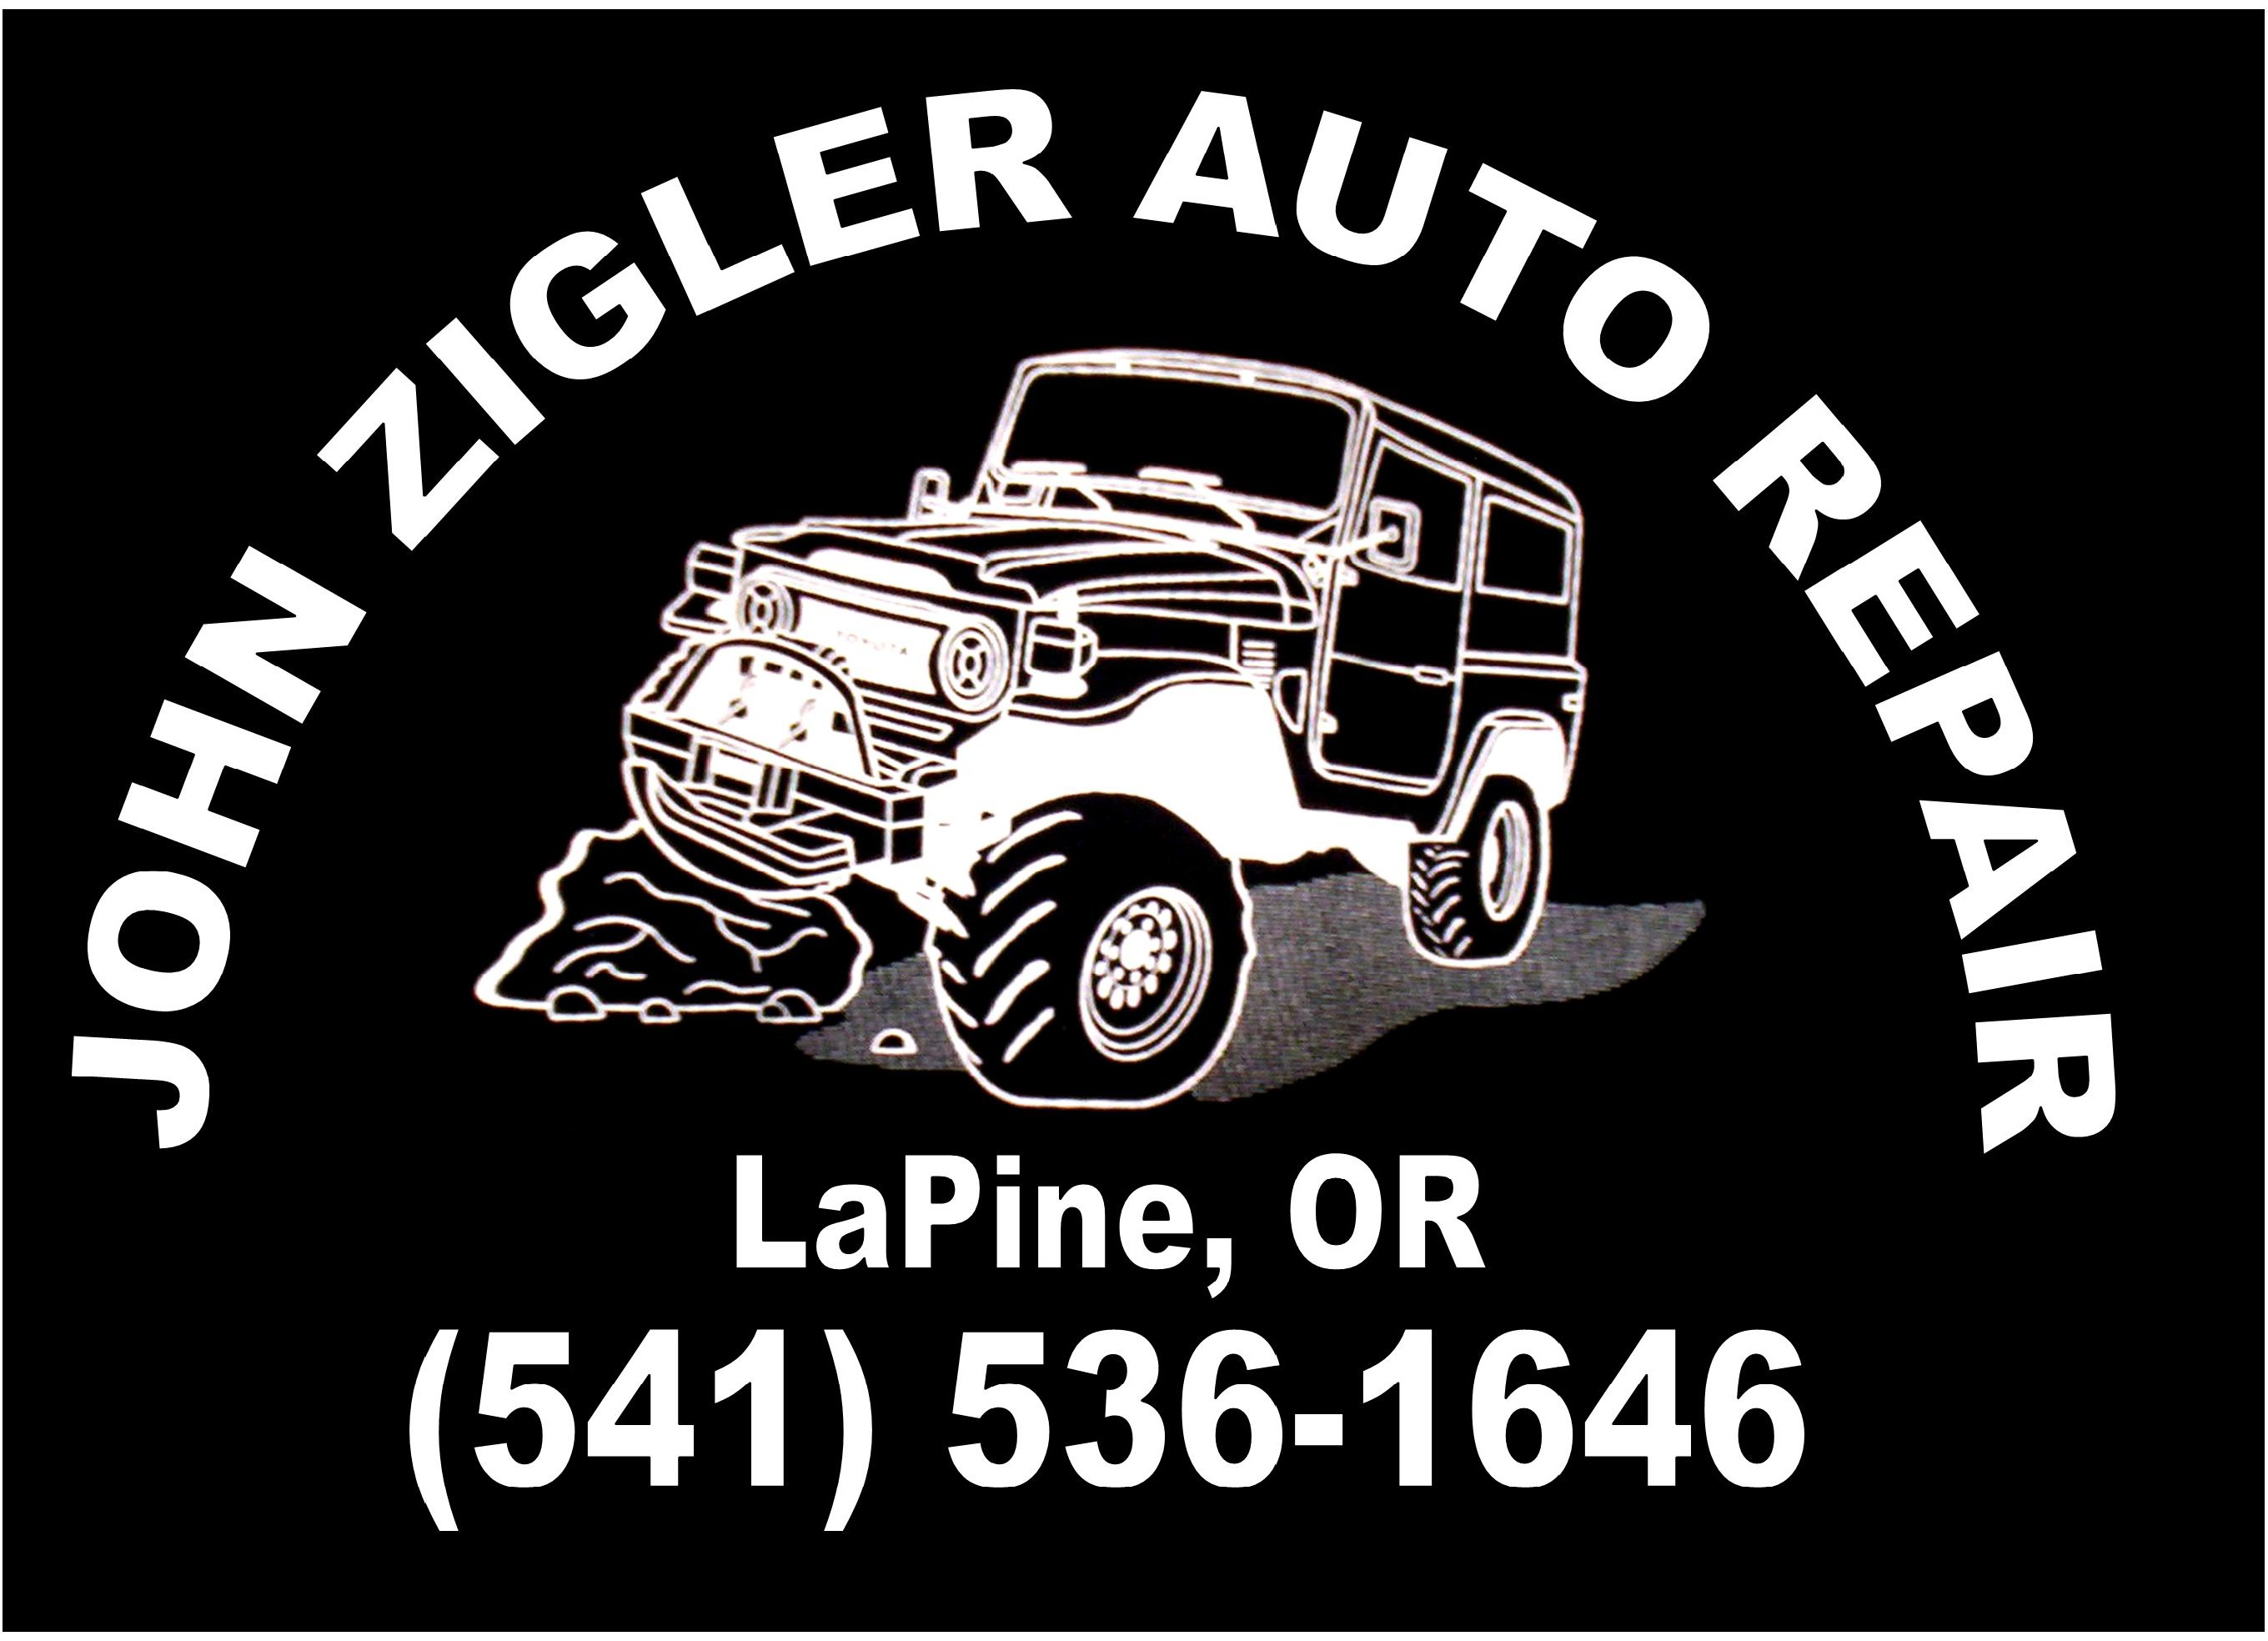 Zigler Automotive LaPine